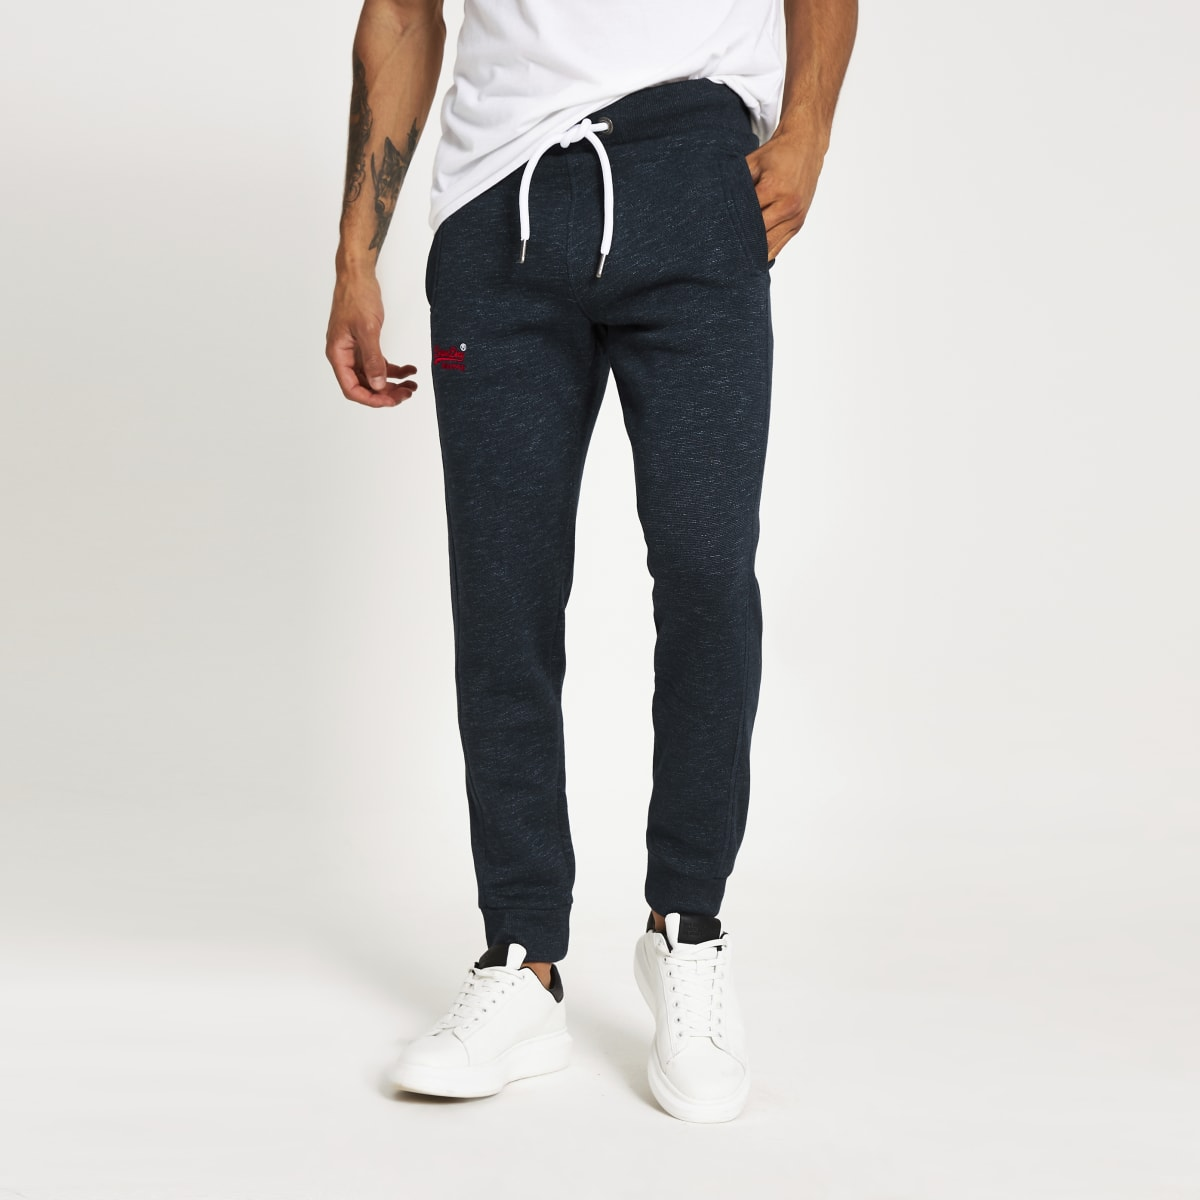 Superdry - Marineblauwe classic joggingbroek uit de Orange Label-reeks